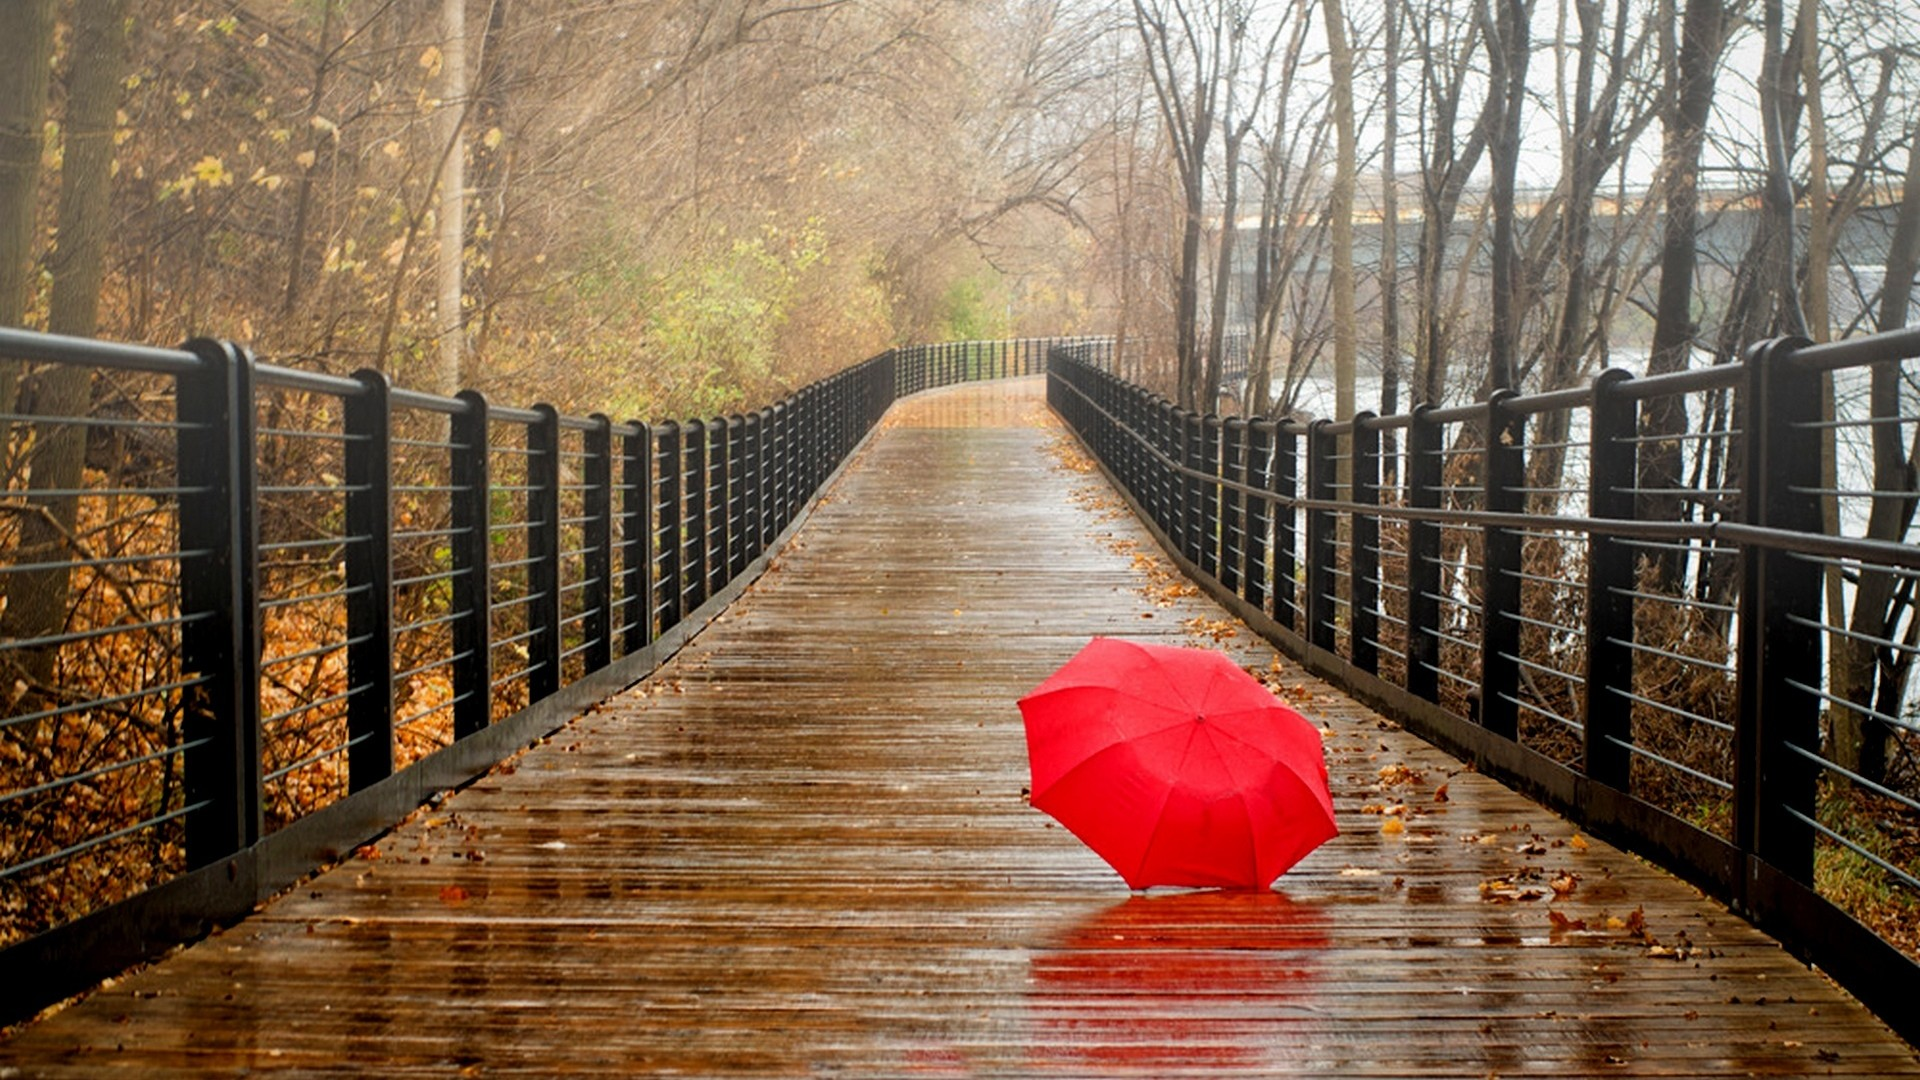 4K Umbrellas Wallpapers High Quality   Download Free